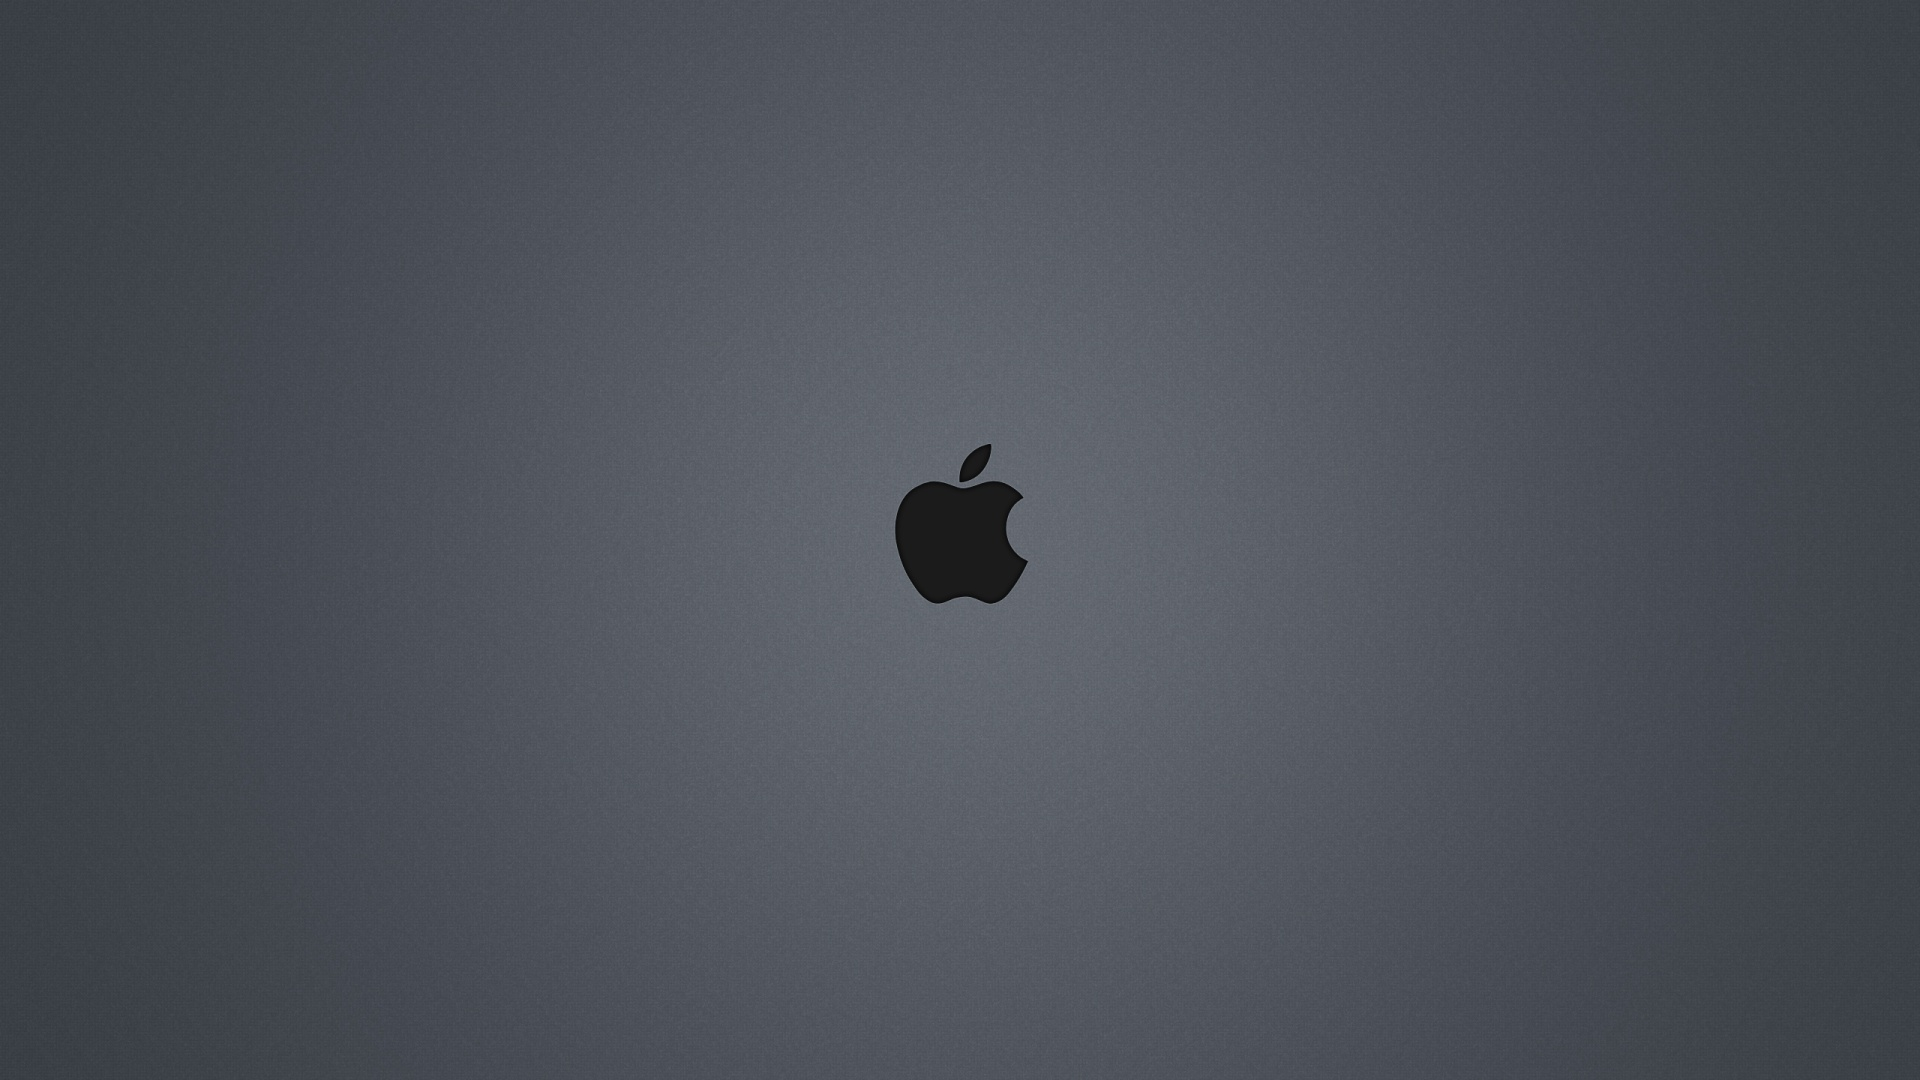 1920x1080 Apple Wallpaper